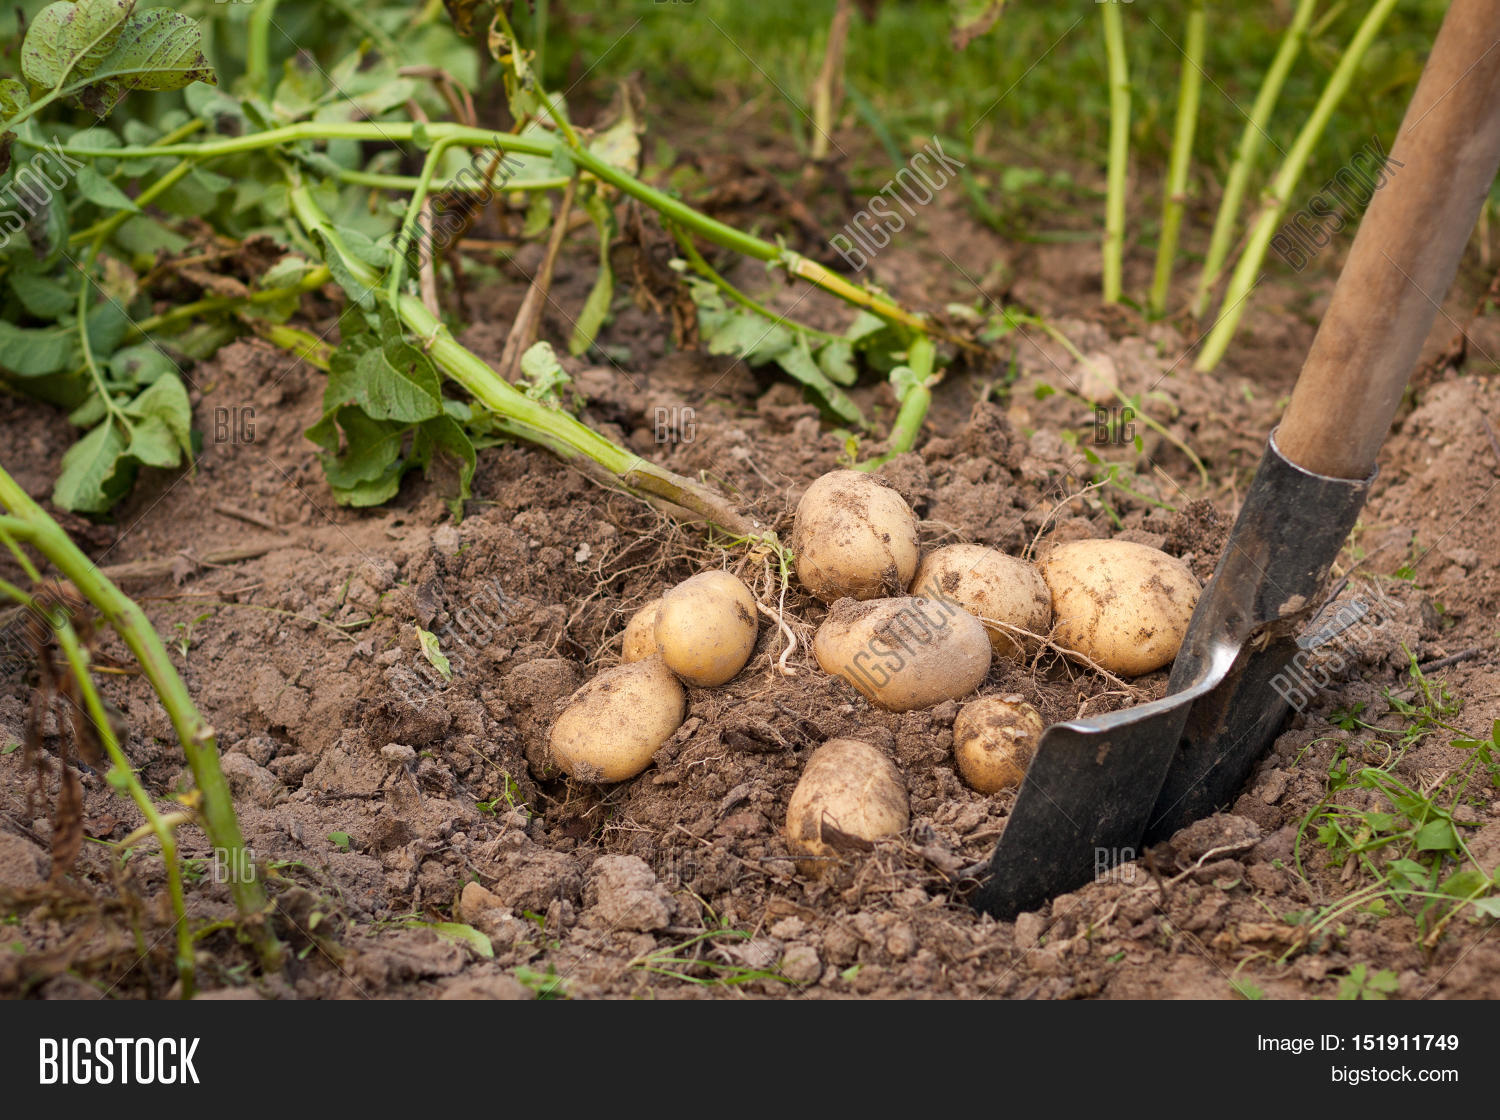 When to dig potatoes